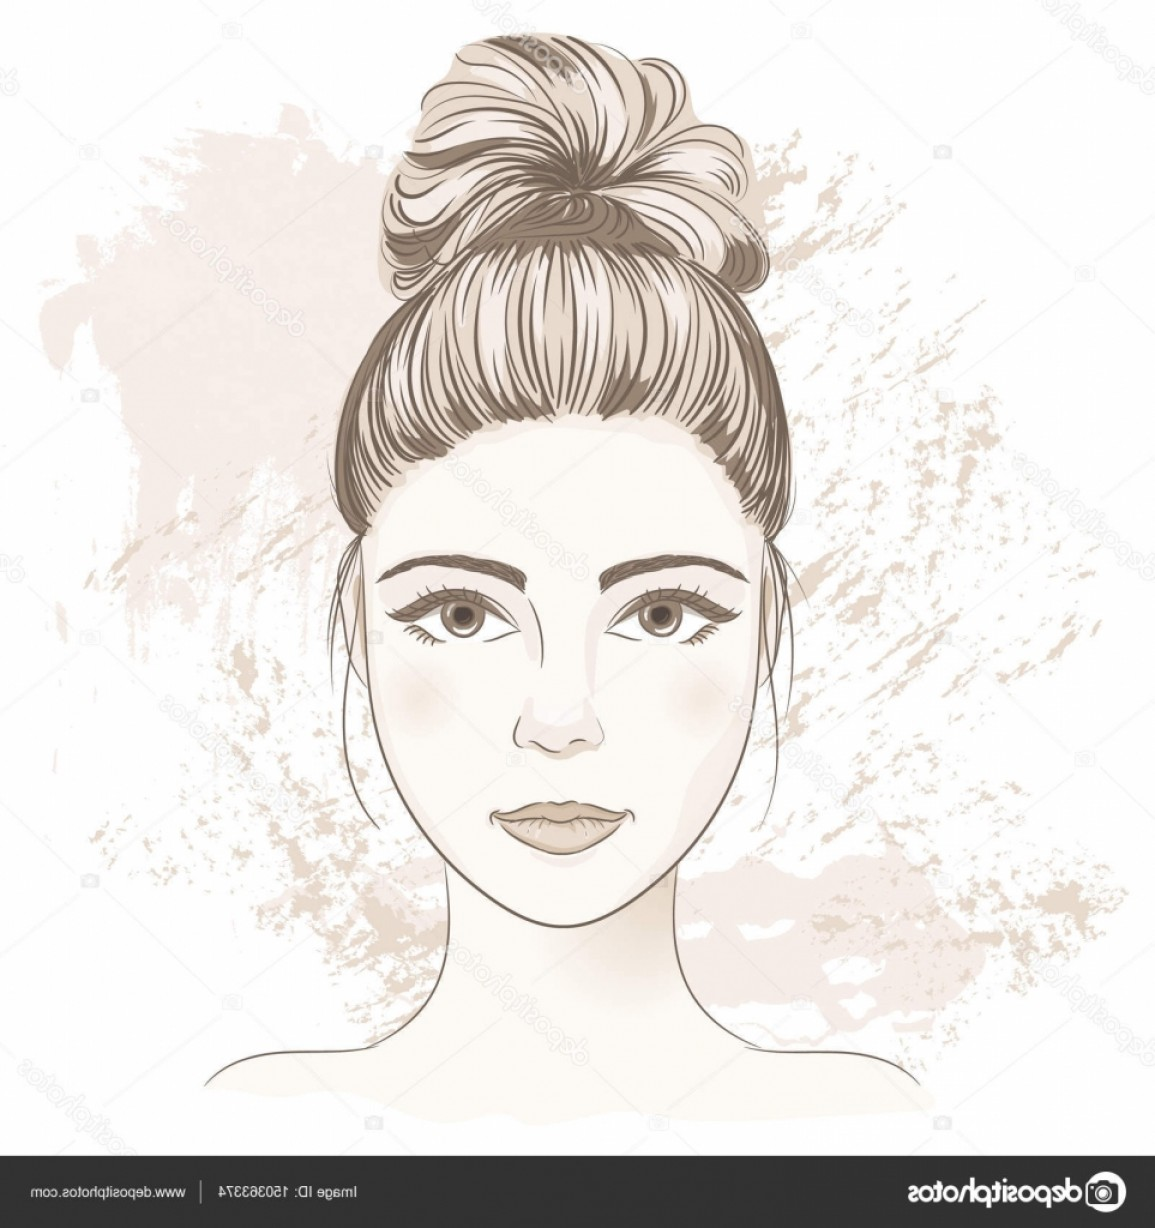 Lady Face Layers Vector: Stock Illustration Young Woman Face Digital Monochrome